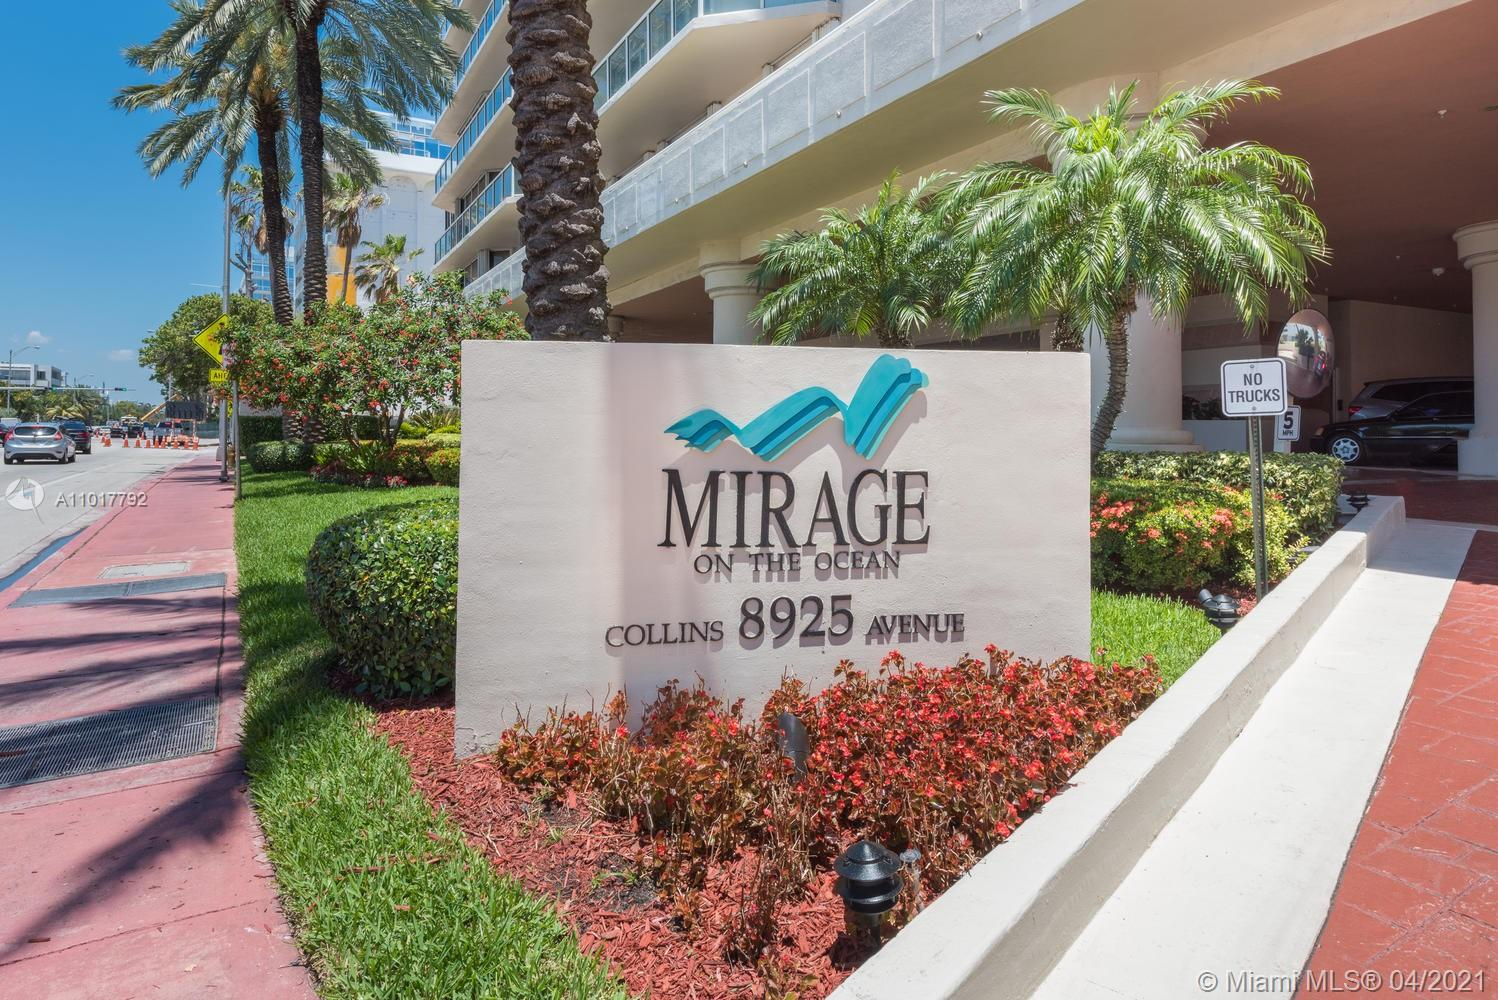 3BR/2.5BA corner 2nd floor unit with stunning views of ocean and (soon to be finished) pool and garden in boutique building.  Unit feels more like a house with the pool, garden and beach in your backyard.  Hurricane impact windows cover the floor to ceiling sliding doors on the wrap around terrace.  Mirage has the largest balcony for 3 BR/2.5 BA in this price point. Building finishing an extensive remodel of exterior, lobby, pool and garden area, bringing the building up to date.  List & pictures attached.